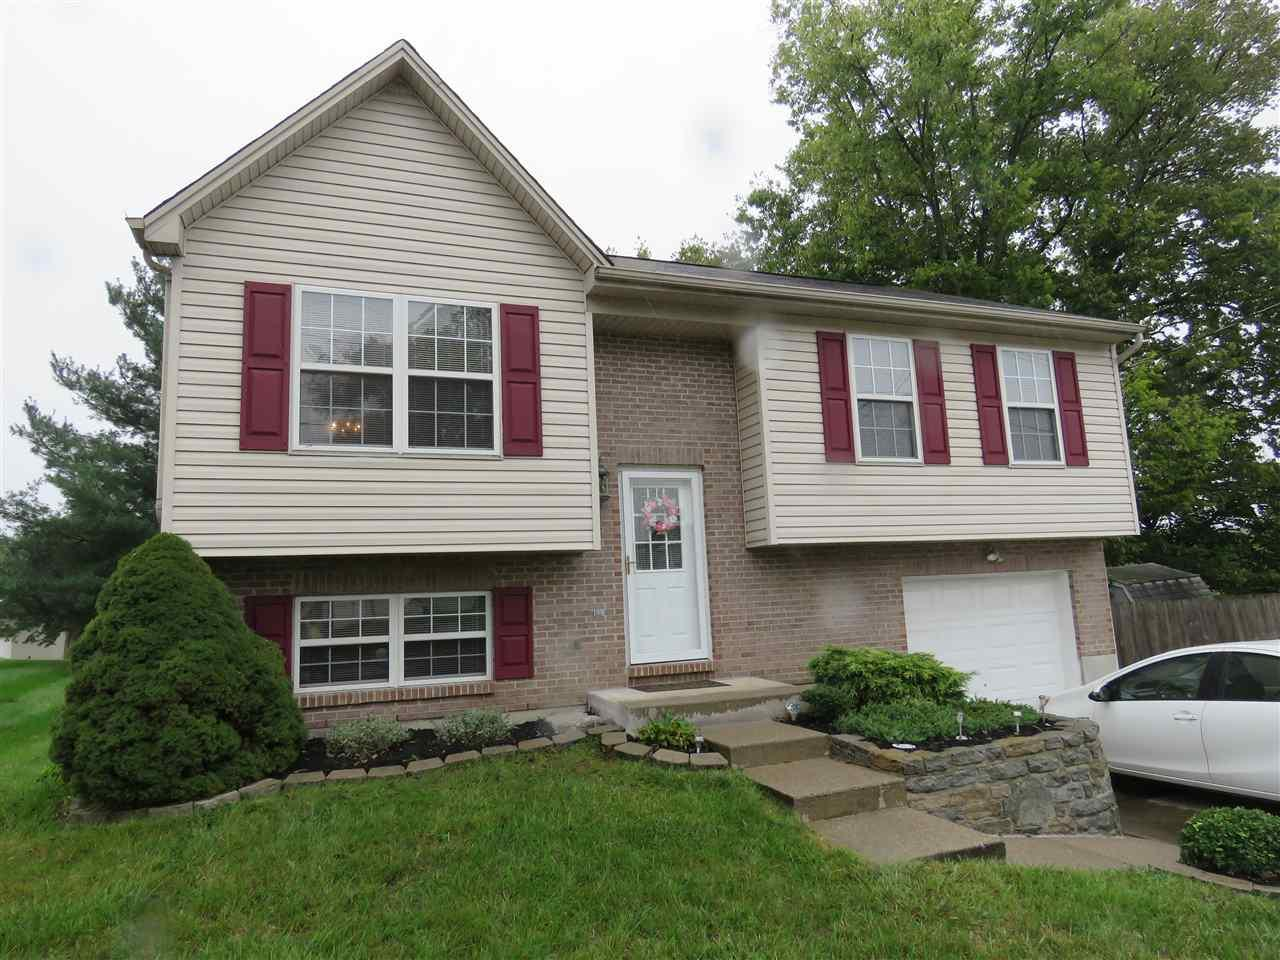 2511 Audrey Terrace, Crescent Springs, KY 41017 (MLS #520286) :: Apex Realty Group